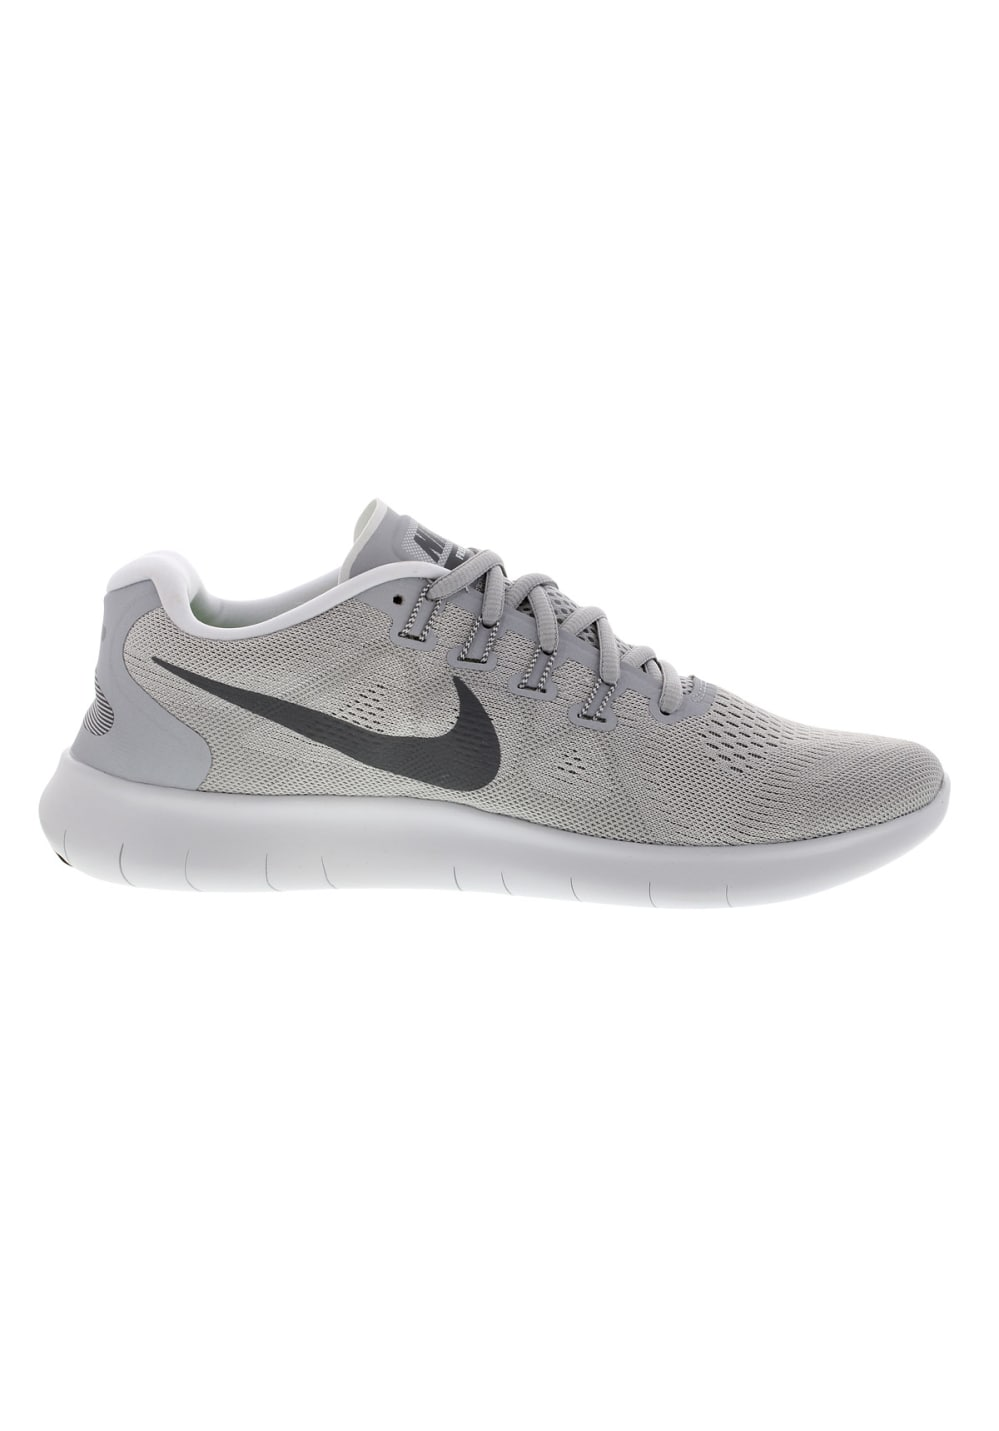 7204064c13f9ca Next. -50%. This product is currently out of stock. Nike. Free RN 2017 - Running  shoes ...